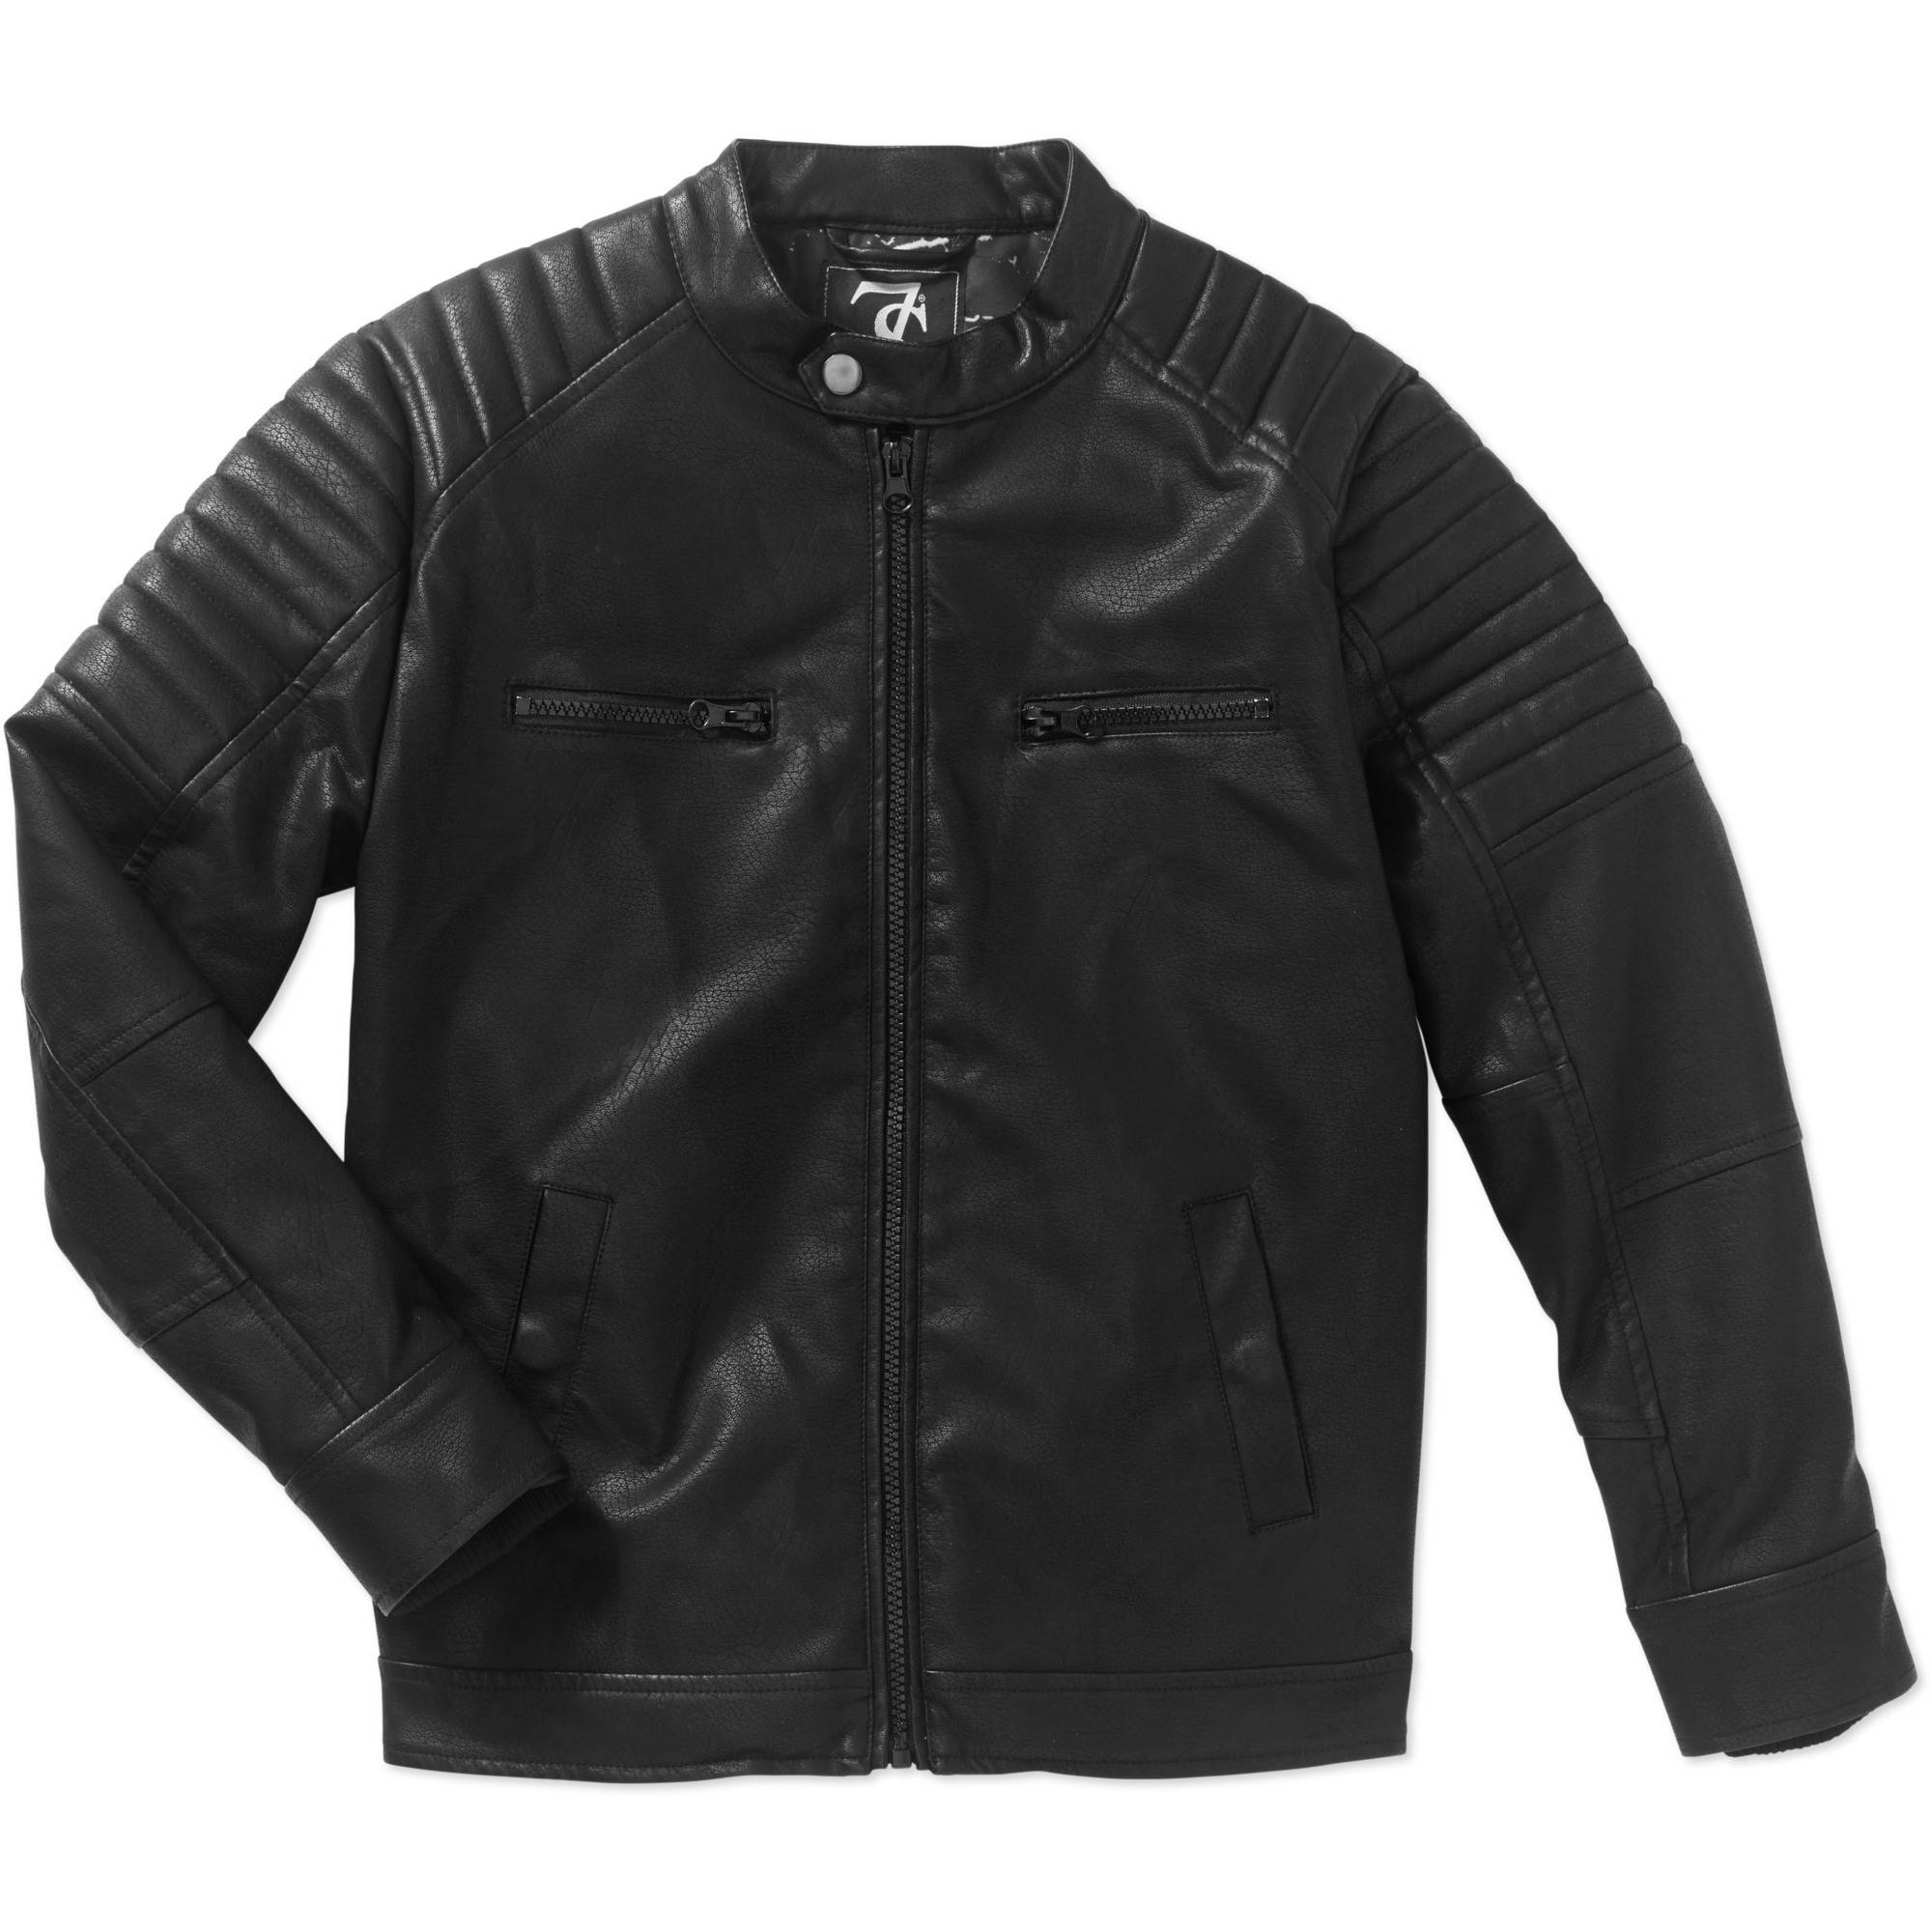 Shop for boys leather jacket online at Target. Free shipping on purchases over $35 and save 5% every day with your Target REDcard.